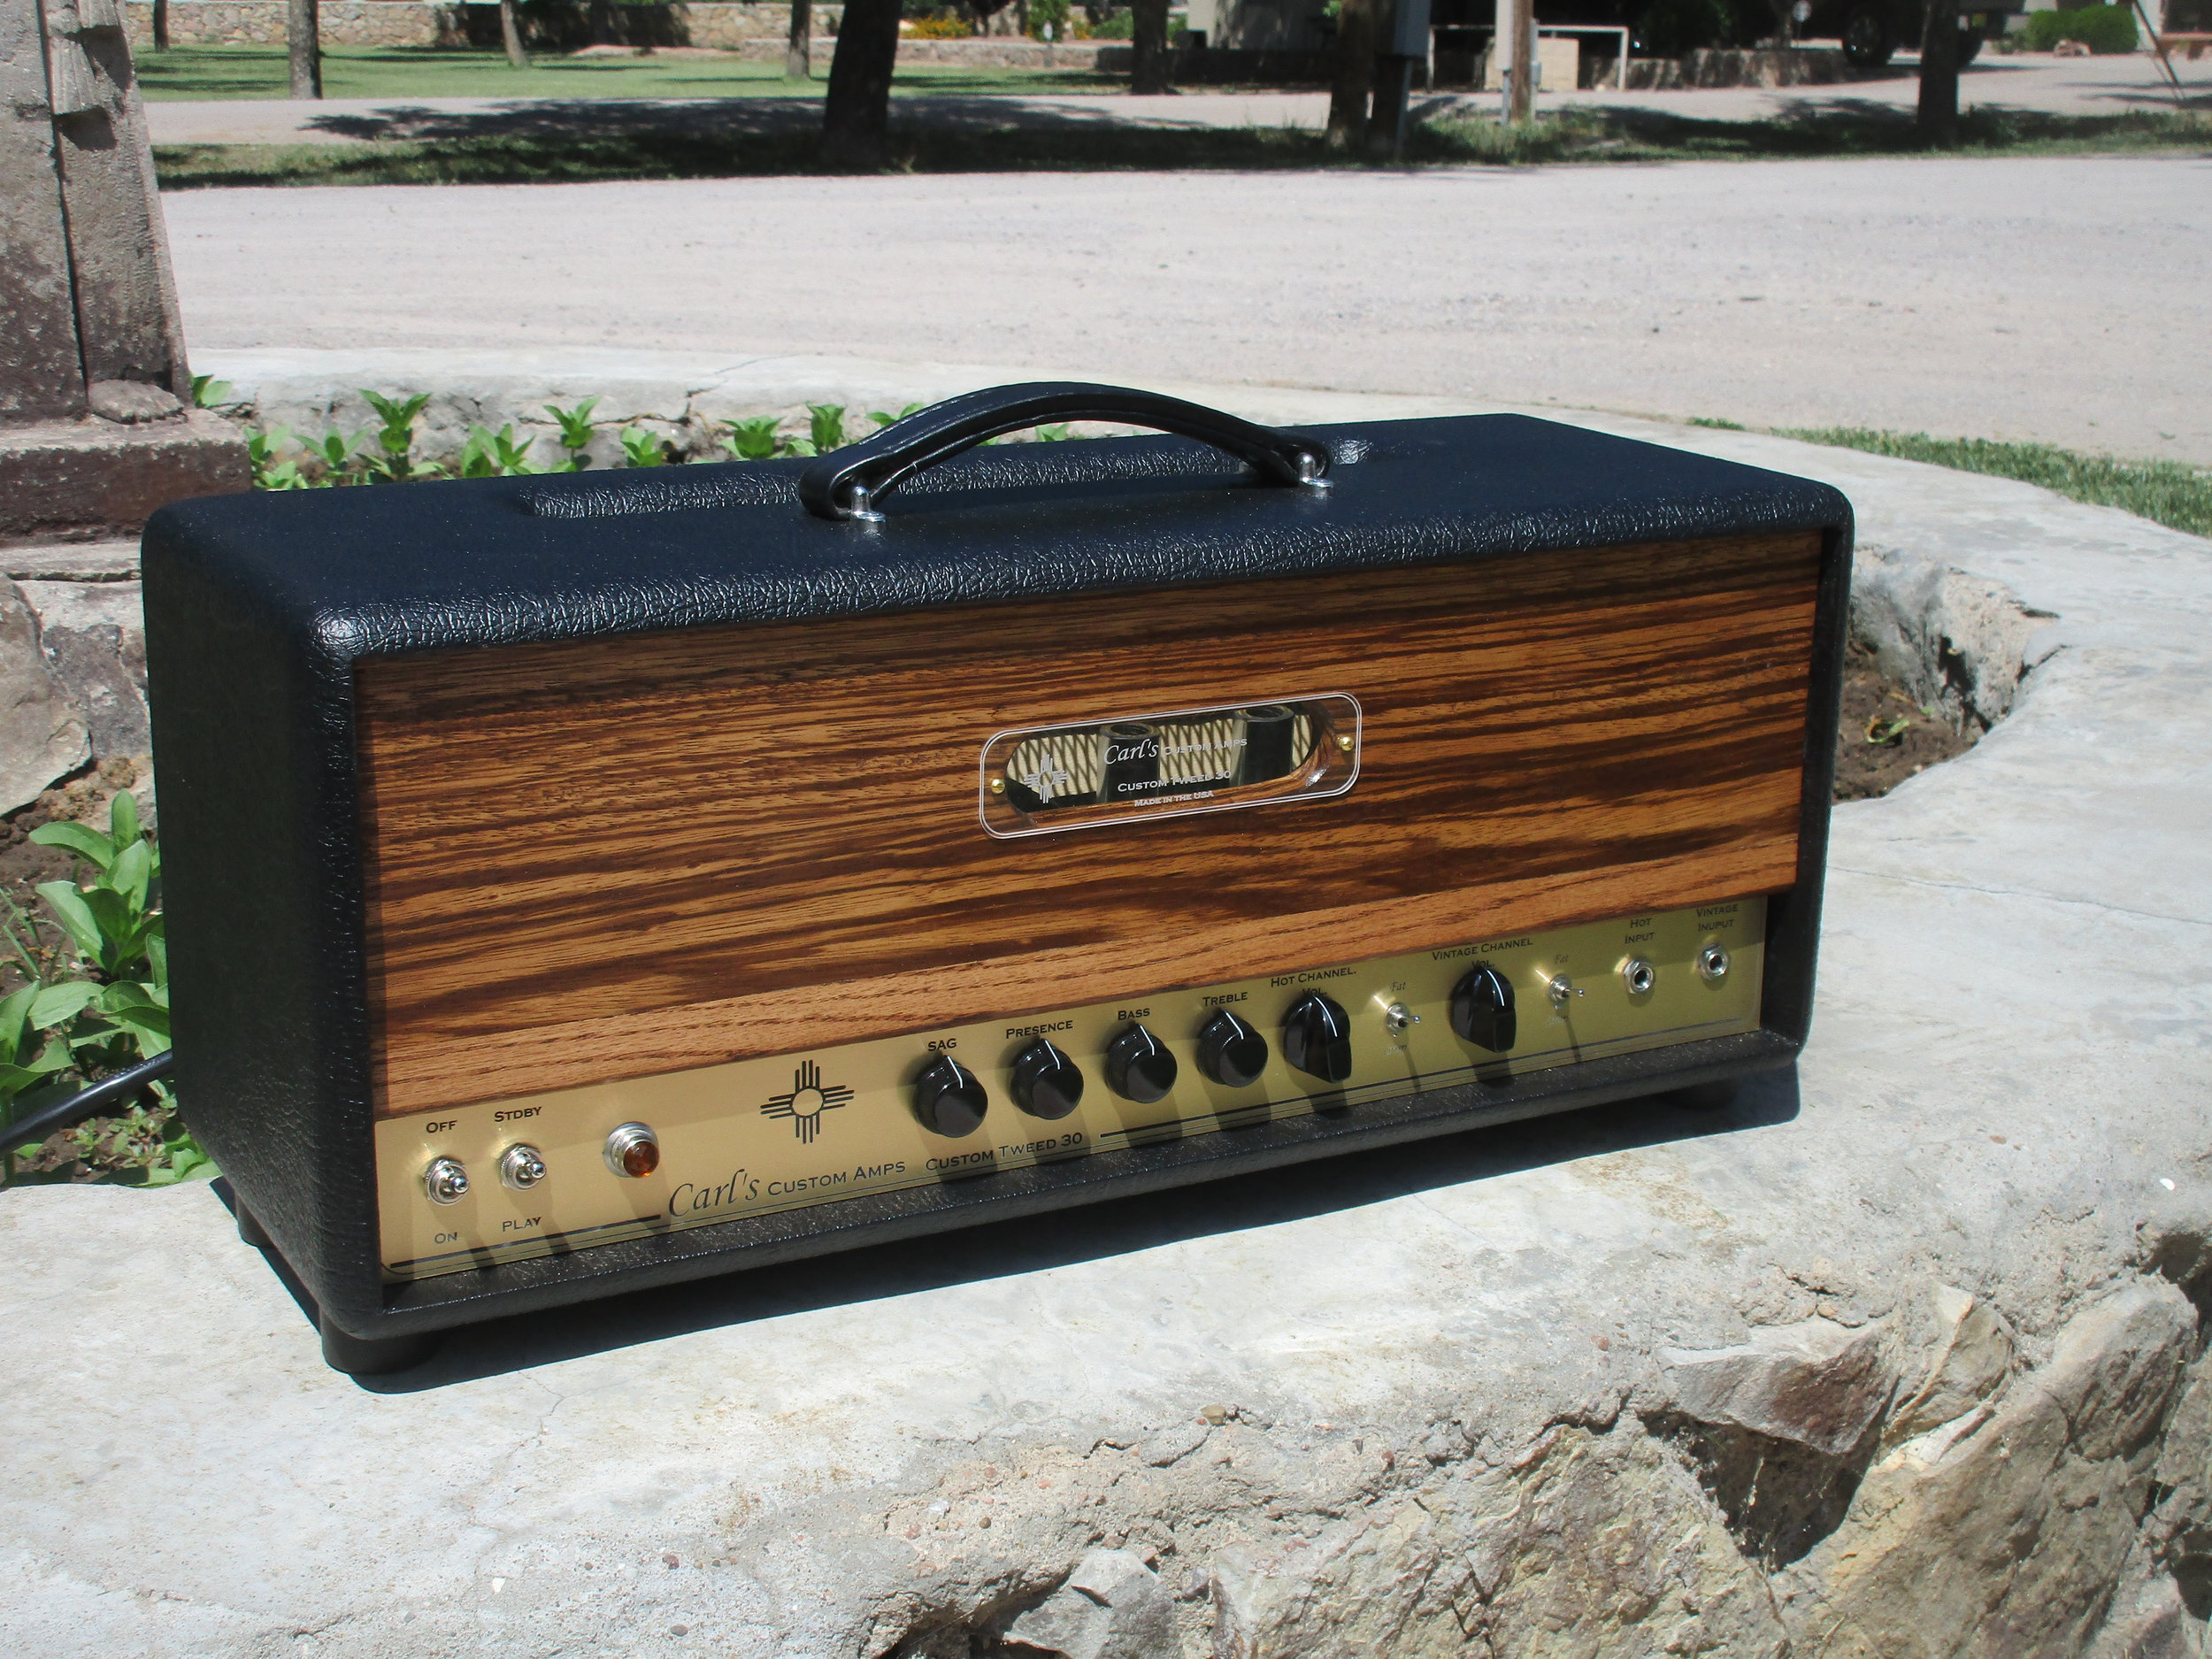 This is one my new favorite custom builds. I'm pretty thrilled with how the front came out. It got a unique tweed type circuit that can be nice and clean or really overdriven and gritty. It's 30W with NOS 6V6s for big creamy tone. There are Hot and Vintage channels and the mini-switches help adapt the amp to different guitars. A SAG control give you everything from a solid-state rectifier feel to a tube rectifier and beyond. The front is oak and zebra wood and just for kicks the logo lights up! The customer loves it….